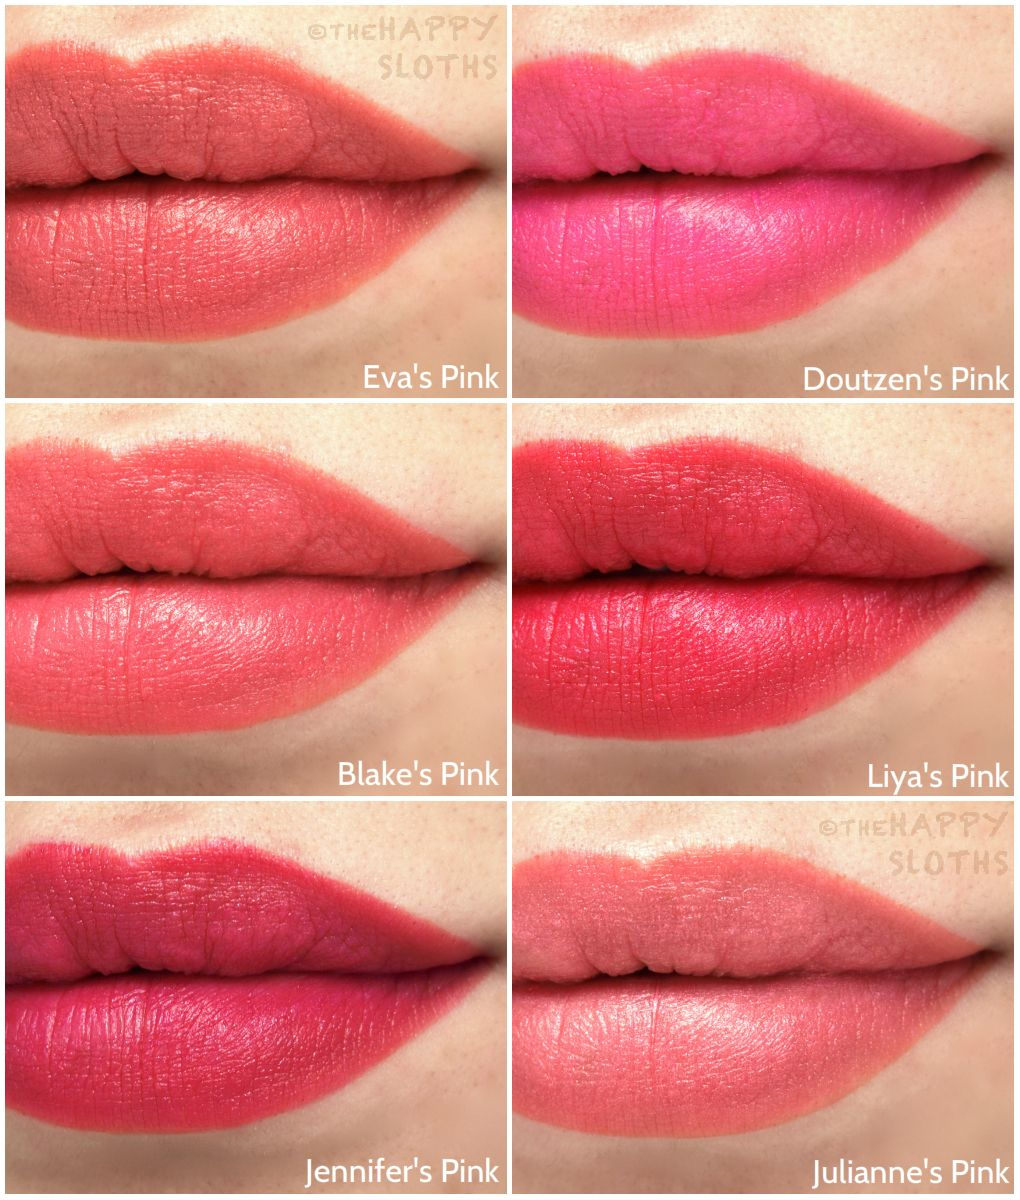 L'Oreal Collection Exclusive Pinks Lipstick: Review and